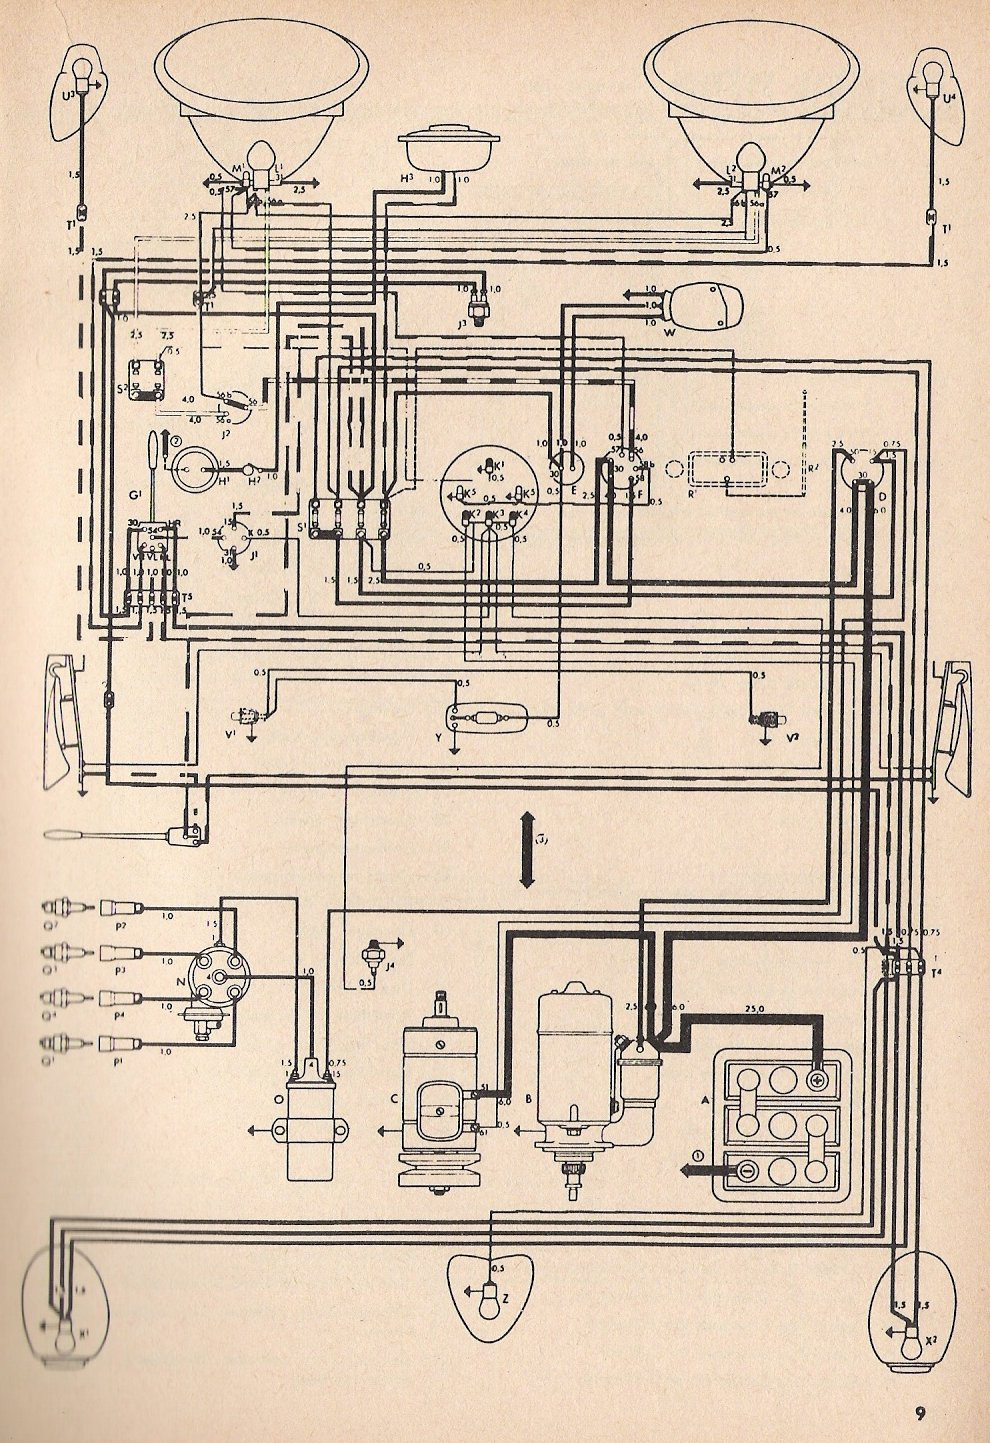 bug_toaug55 thesamba com type 1 wiring diagrams 1973 vw wiring diagram at nearapp.co